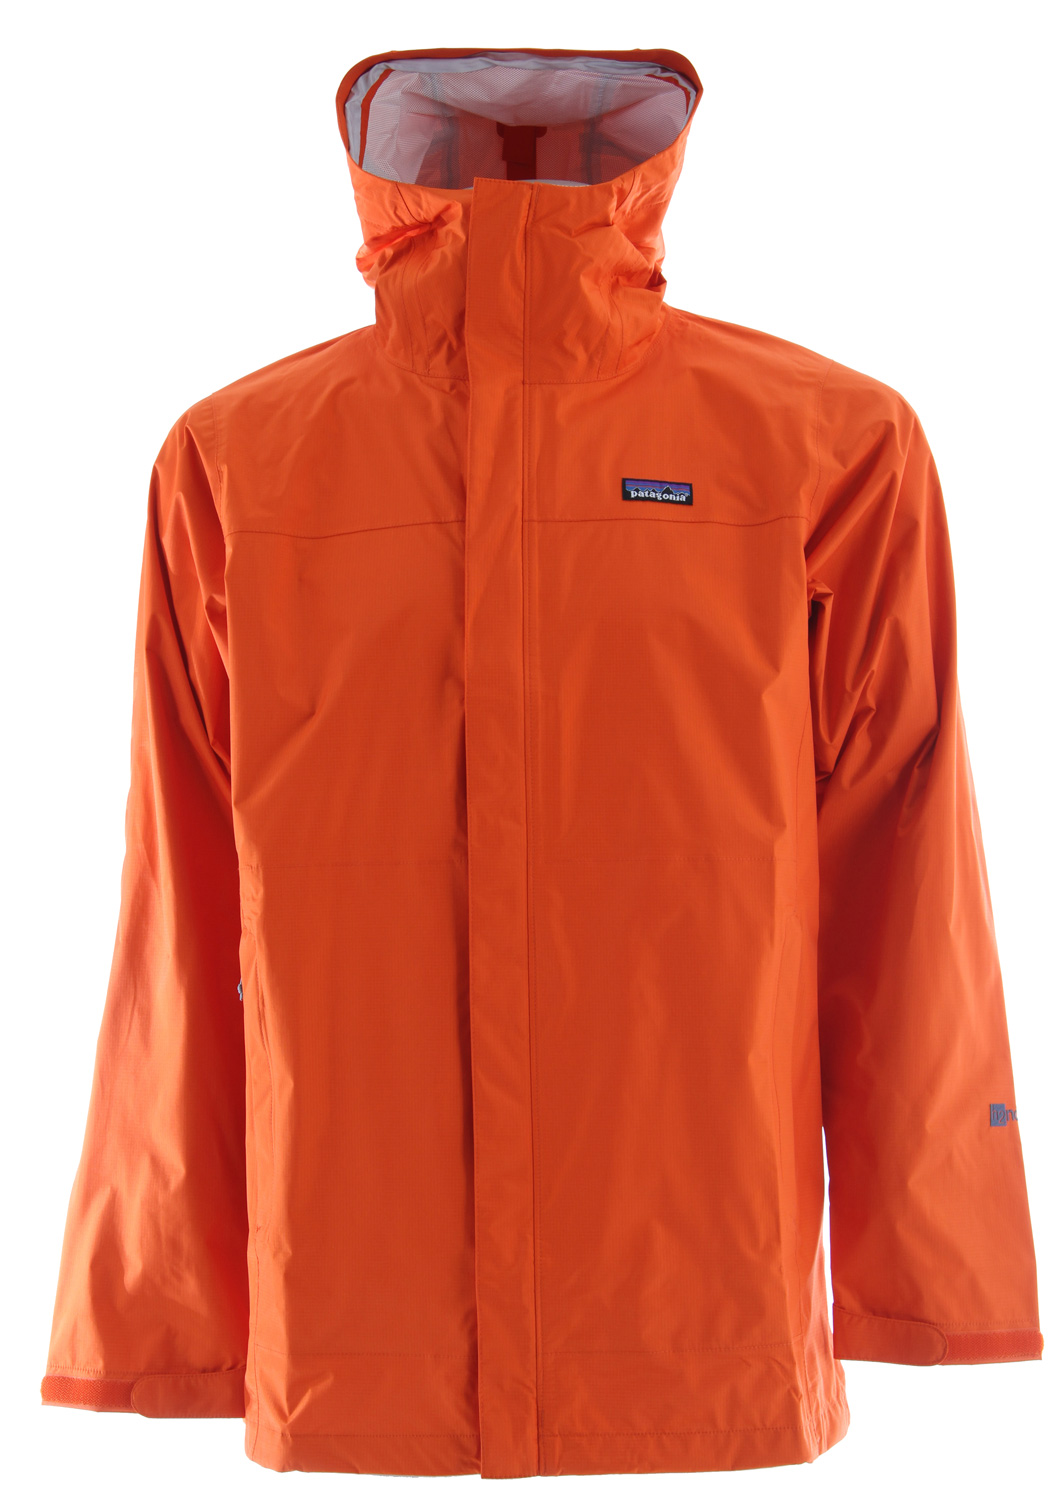 A full-coverage version of our popular Torrentshell, the stormproof Parka is made of a 2.5-layer waterproof/breathable H2No barrier and Deluge DWR (durable water repellent) finish. The features add comfort: a roll-down adjustable hood with laminated visor, a 2-way center front zipper and pit zips with storm flaps, self-fabric hook-and-loop cuff closures, a drawcord hem and microfleece-lined neck. The longer length fits easily over a sports coat. Pockets: two external handwarmers, one internal mesh drop-in and a zippered interior that the parka stuffs into.Key Features of the Patagonia Torrentshell Parka Jacket: 2.5-layer nylon ripstop shell with a waterproof/breathable H2No barrier and Deluge DWR (durable water repellent) finish 2-way-adjustable hood with laminated visor rolls down and stows Microfleece-lined neck for comfort and enhanced protection of waterproof/breathable barrier 2-way center-front zipper with exterior and interior storm flaps to keep water out; pit zips with storm flaps and Deluge DWR-treated zippers Pockets: Two handwarmers; one internal mesh drop-in; stows in left hand pocket Self-fabric hook-and-loop cuff closures Drawcord hem 2.5-layer, 2.6-oz 50-denier 100% nylon ripstop with a waterproof/breathable H2No barrier and a Deluge DWR (durable water repellent) finish 383 g (13.5 oz) Made in China. 2-layer H2No shell fabrics are completely waterproof, windproof and breathable. They utilize an internal mesh or a wicking, hanging fabric liner to protect the waterproof barrier making them very comfortable and warm, even against the skin. 2-layer shell fabrics are versatile alternatives when you don't need the lightest or most durable shell available. H2No Barrier is Patagonia's standard for 100% waterproof and breathable protection in our shell garments. H2No is created by adding a waterproof and breathable laminate or coating to a high performance protective fabric. This fabric package blocks wind and water on the outside while allowing water vapor generated by your body to escape - keeping you warm, dry and comfortable. Learn more - $82.95